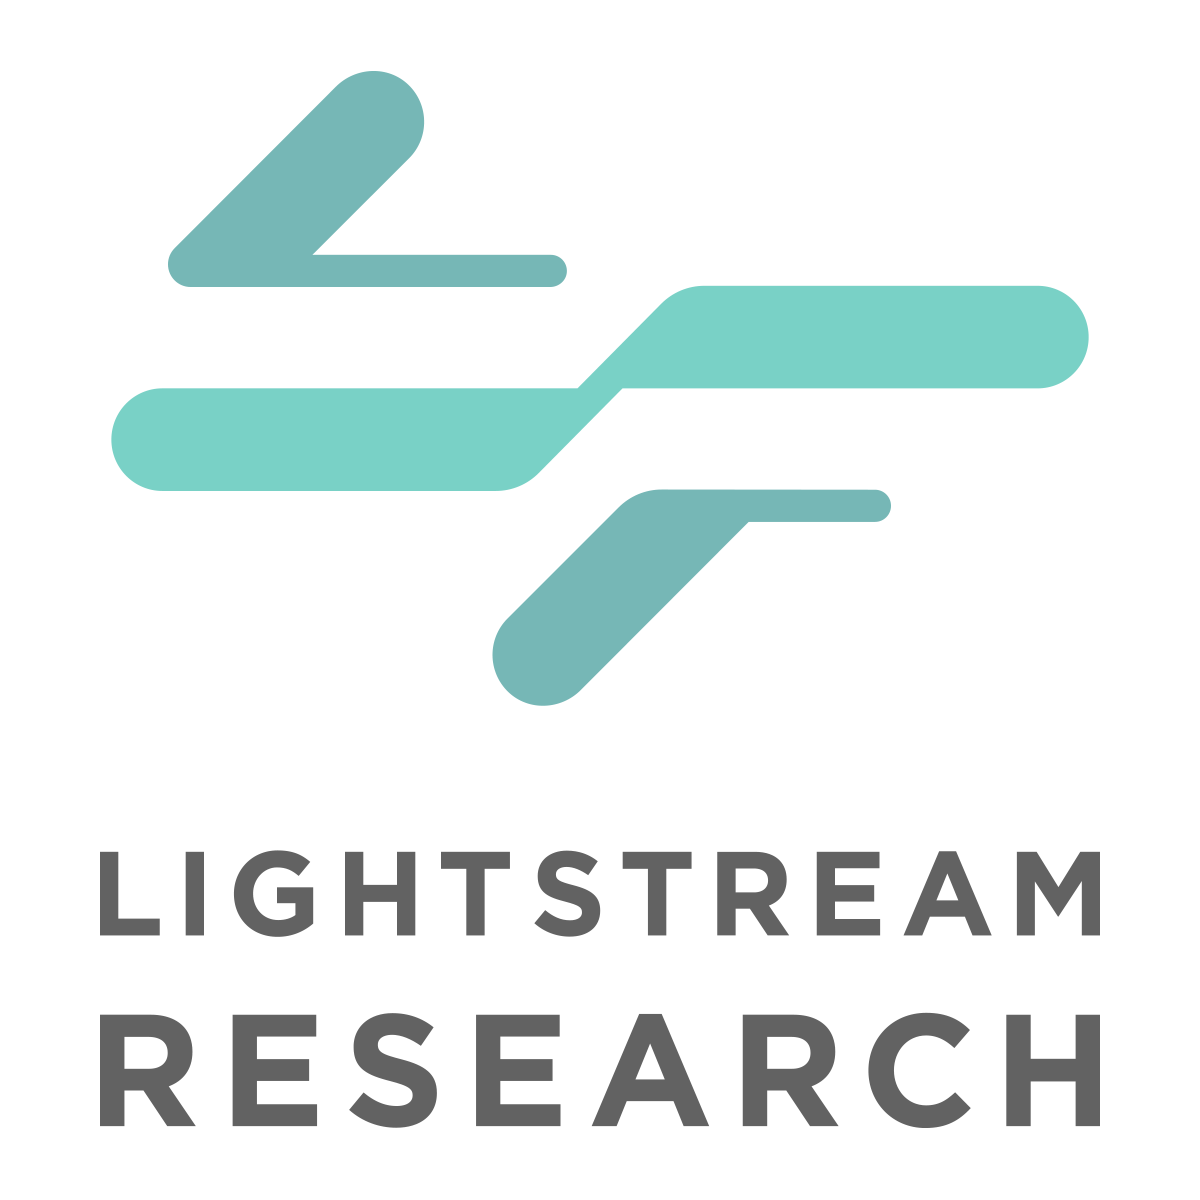 LightStream Research